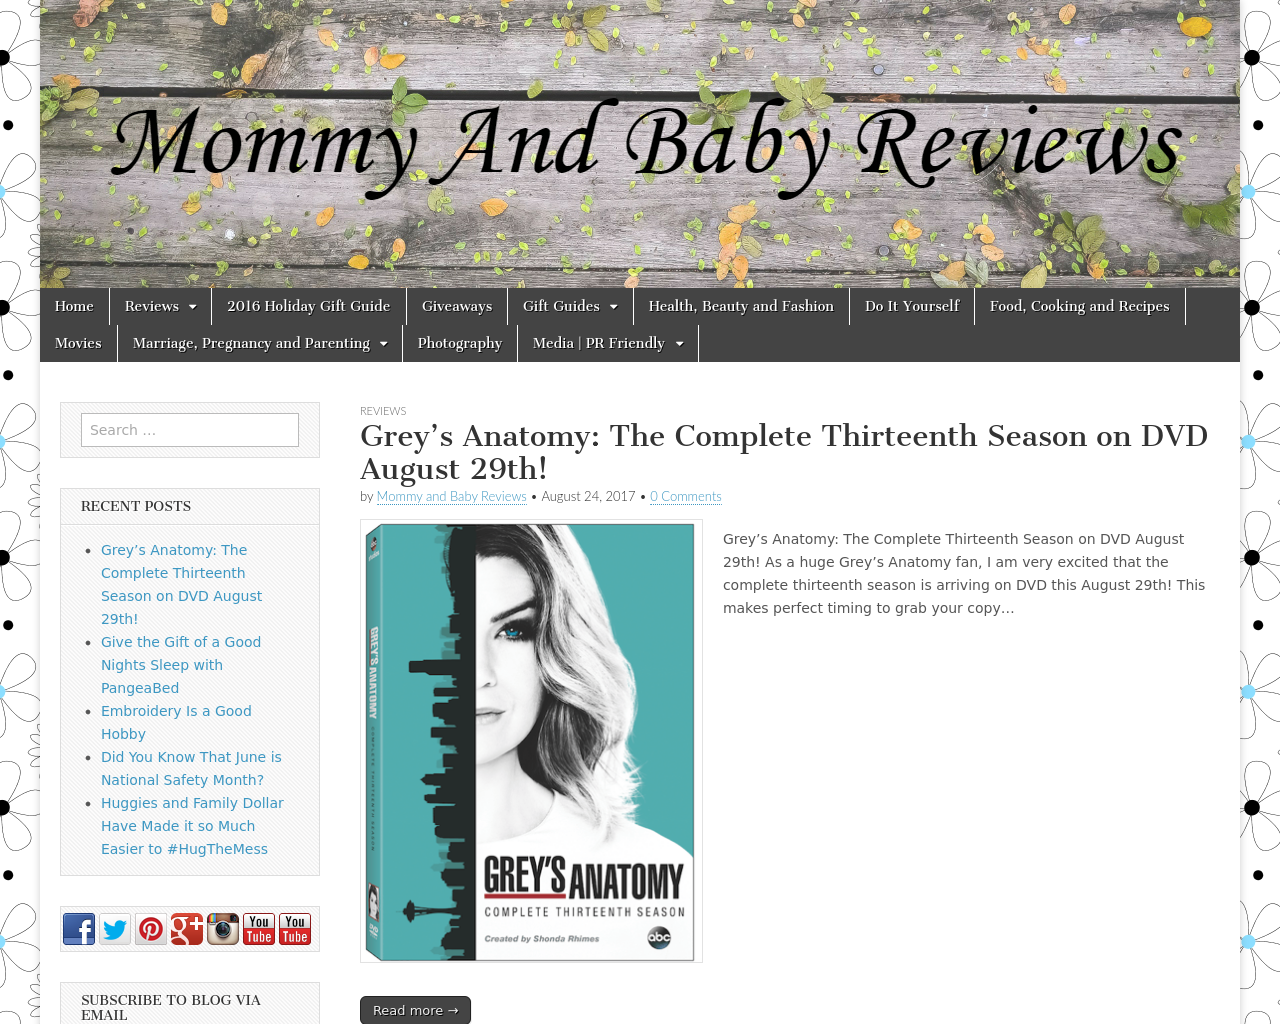 Mommy-&-Baby-Reviews-Advertising-Reviews-Pricing